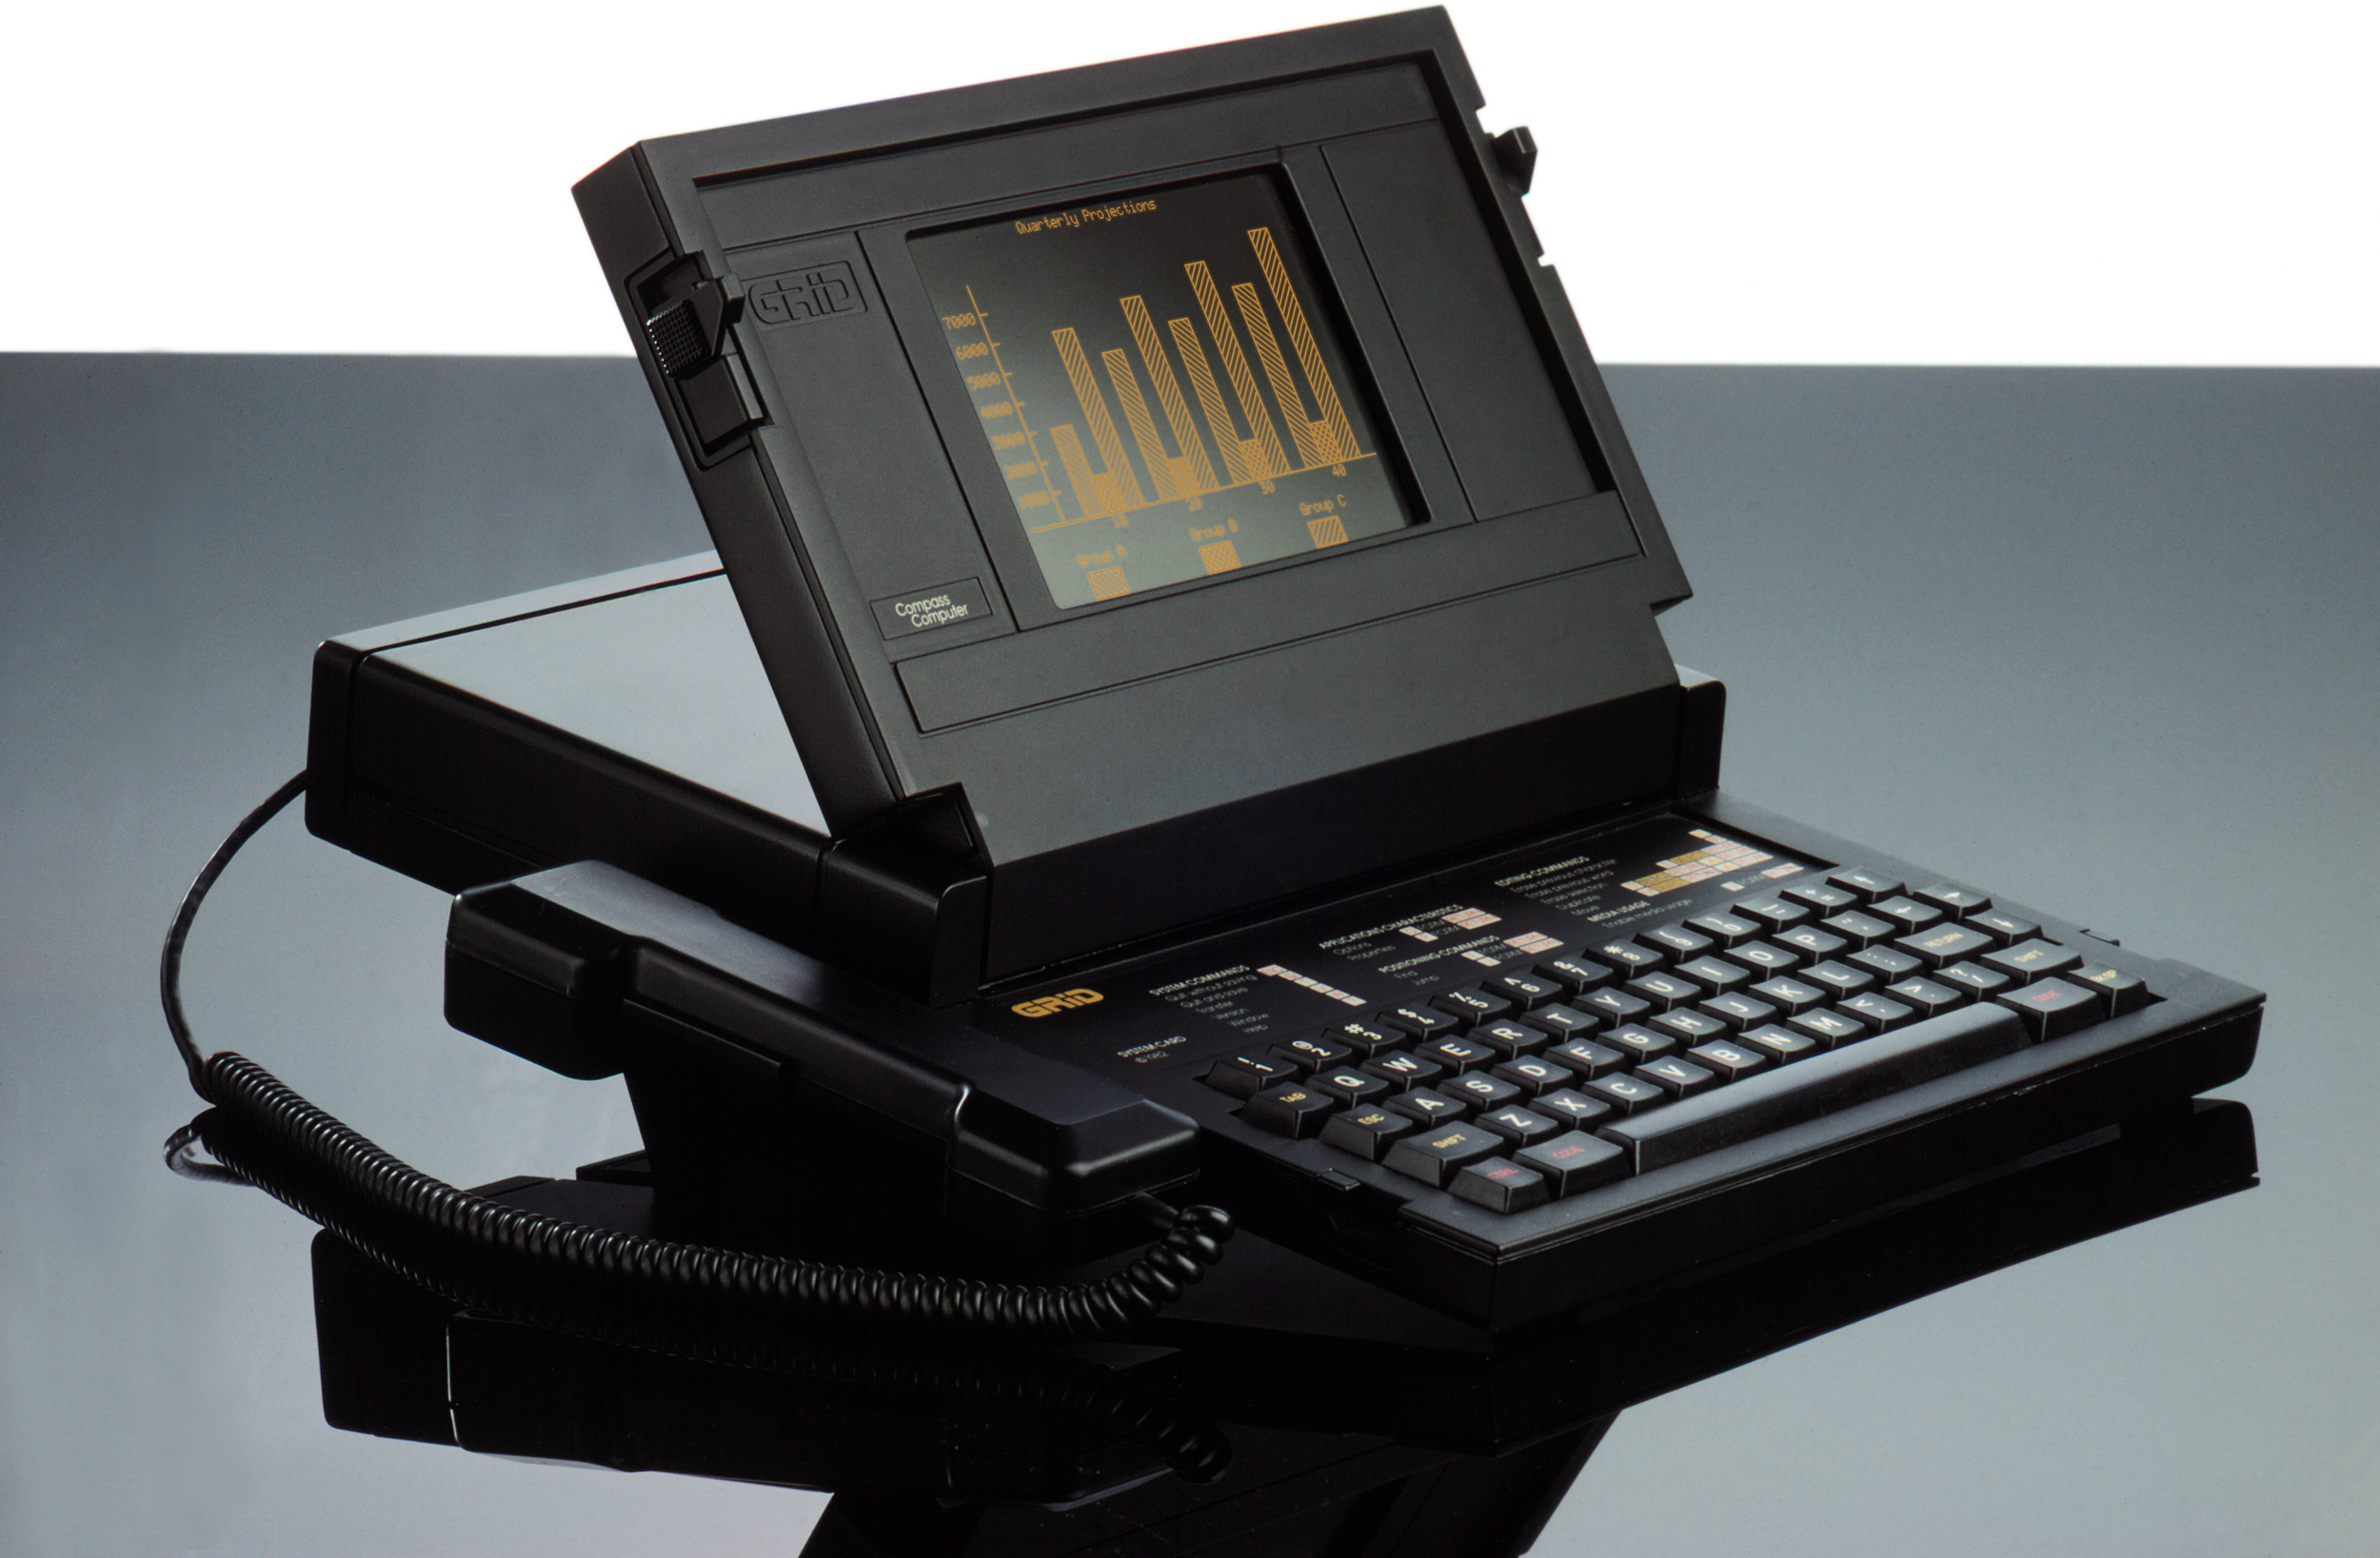 The GRiD Compass, the First Laptop